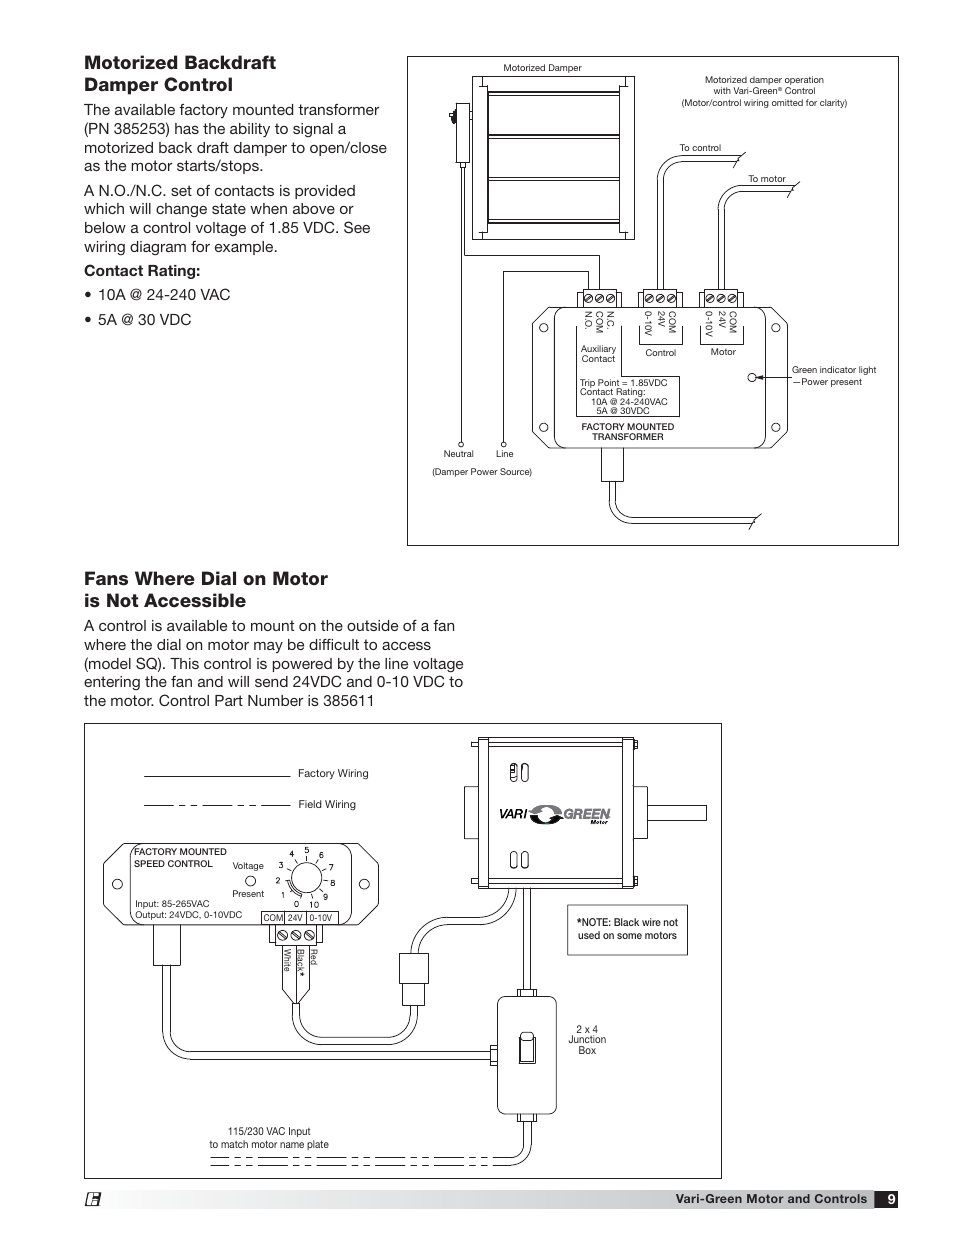 Motorized backdraft damper control, Fans where dial on motor is not  accessible | Greenheck Vari-Green Motor (IOM 473681) User Manual | Page 9 /  12